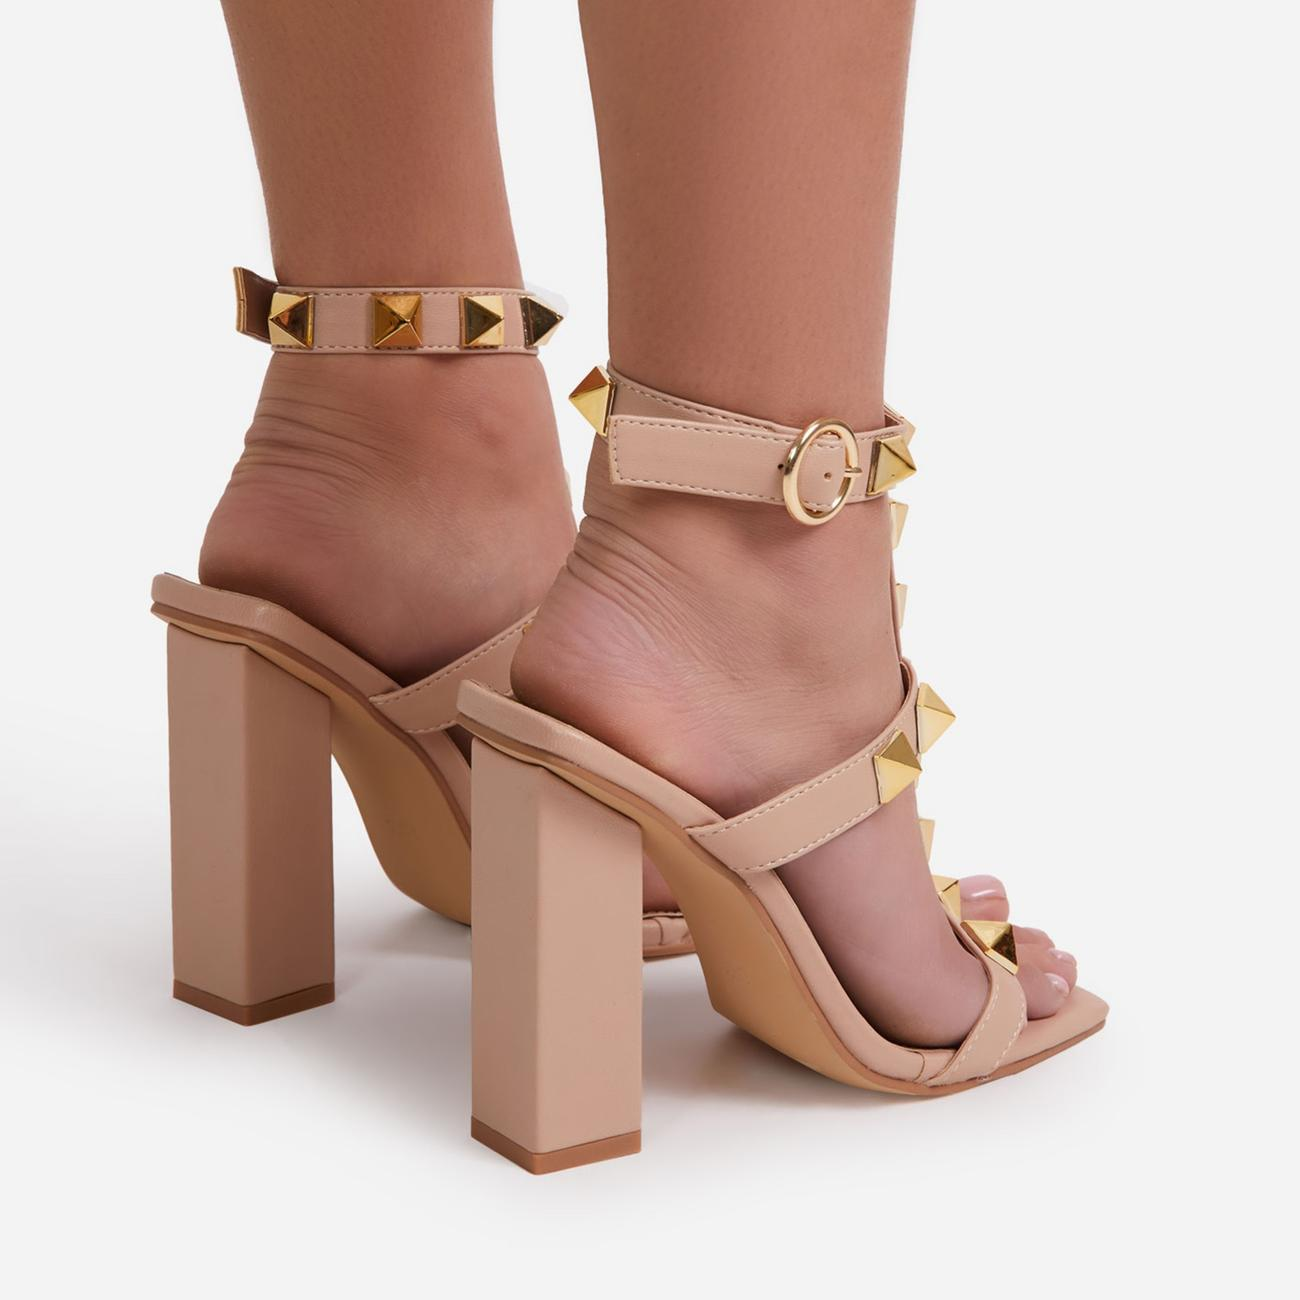 Malaga Studded Detail Caged Square Toe Block Heel In Nude Faux Leather Image 4